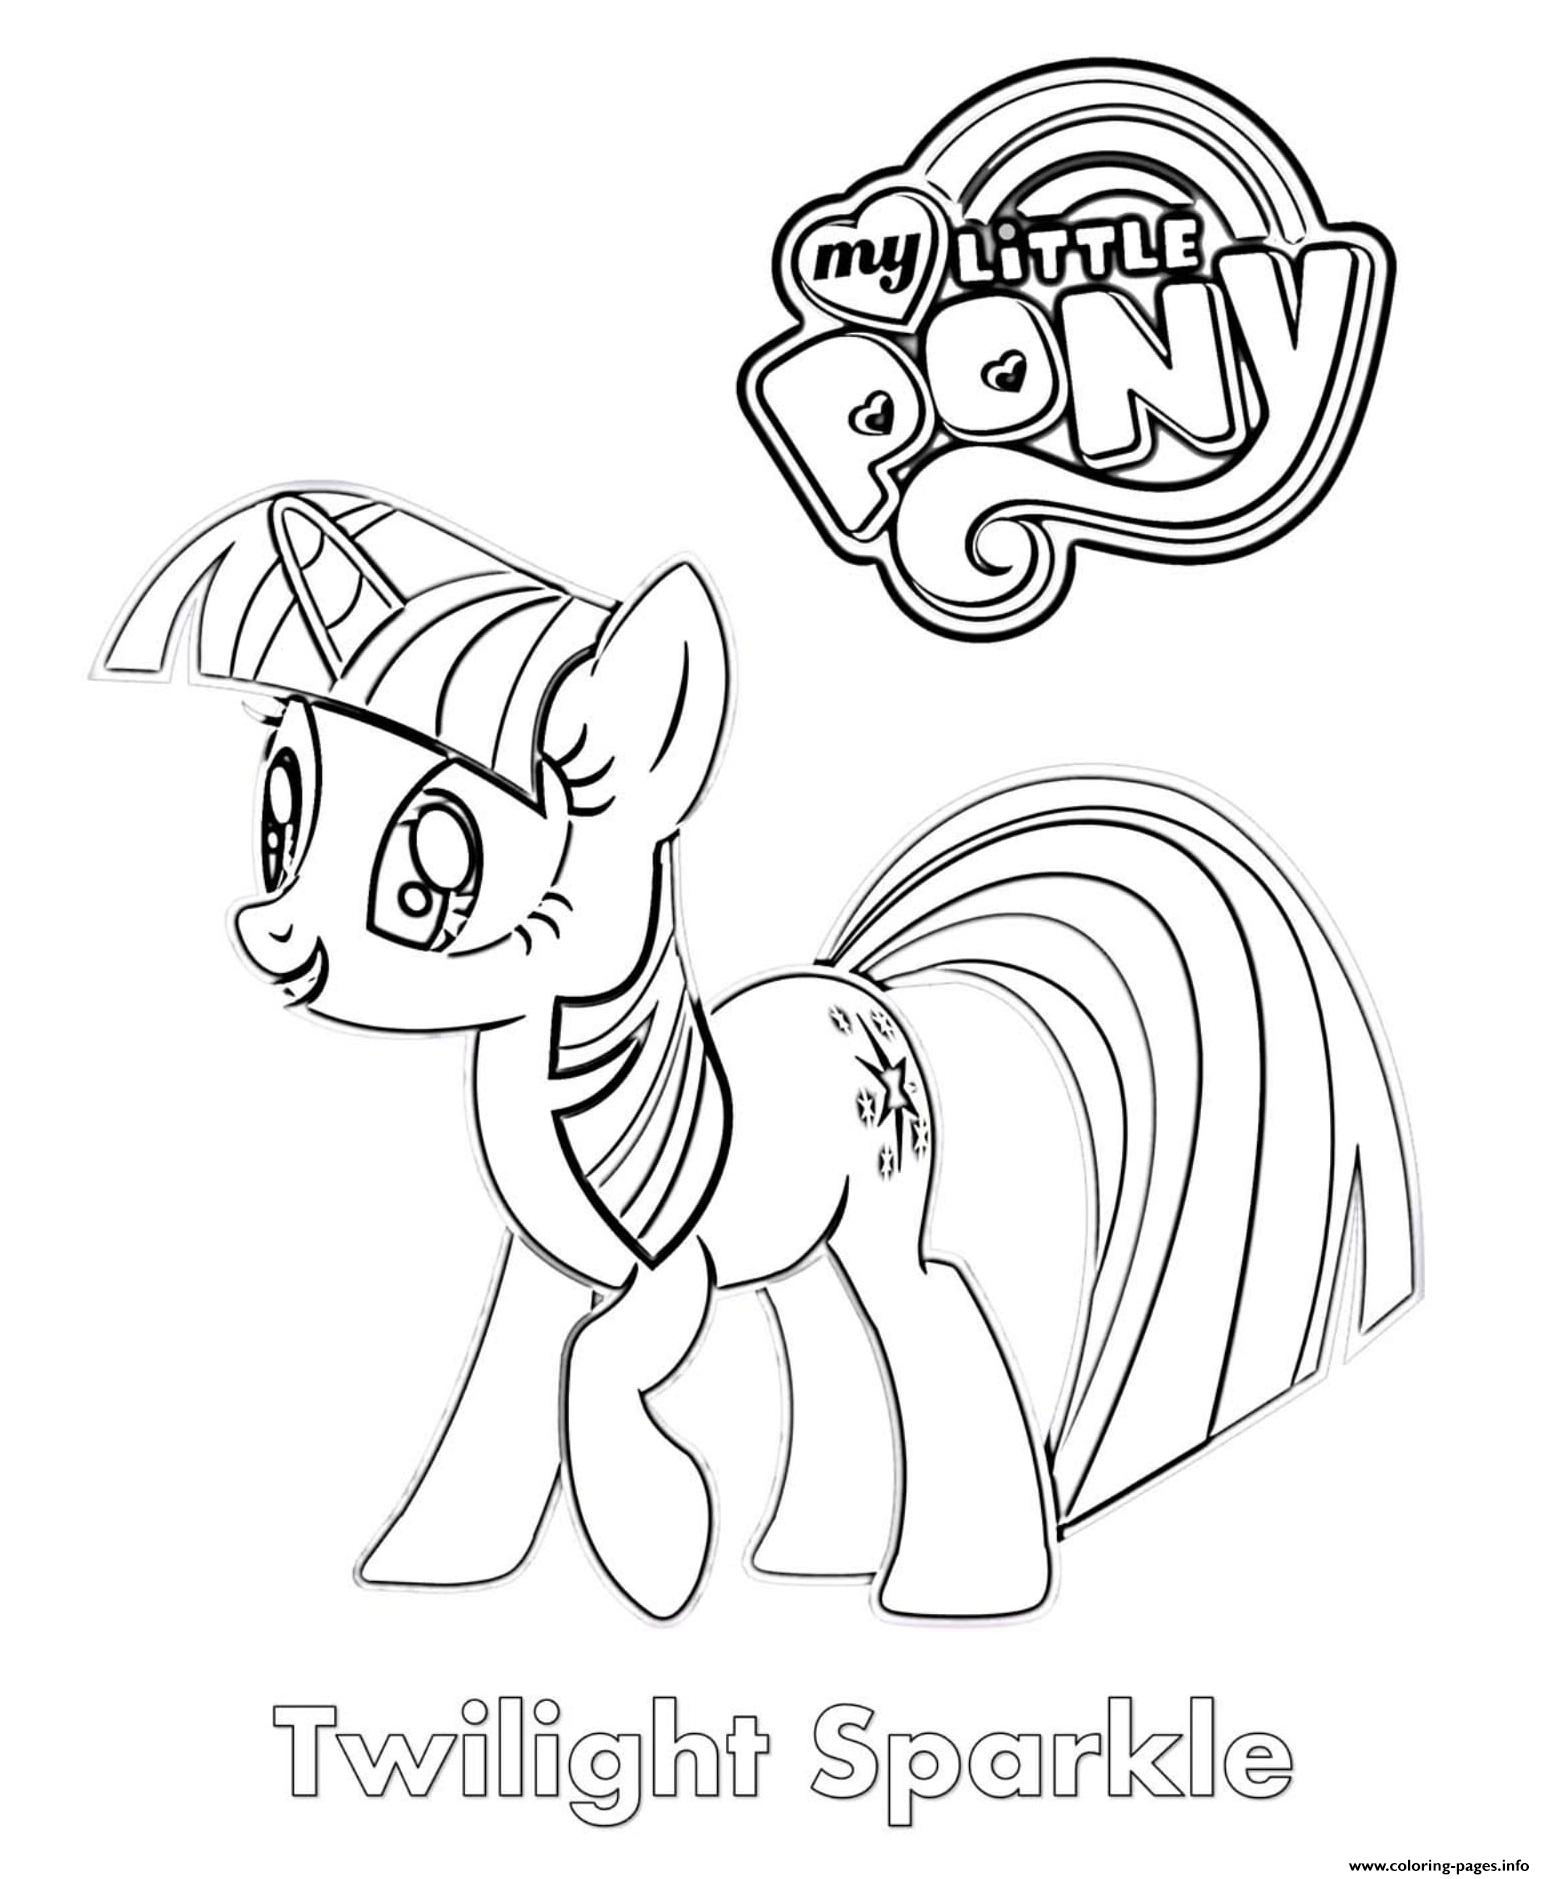 Twilight Sparkle Mlp Coloring Pages Printable